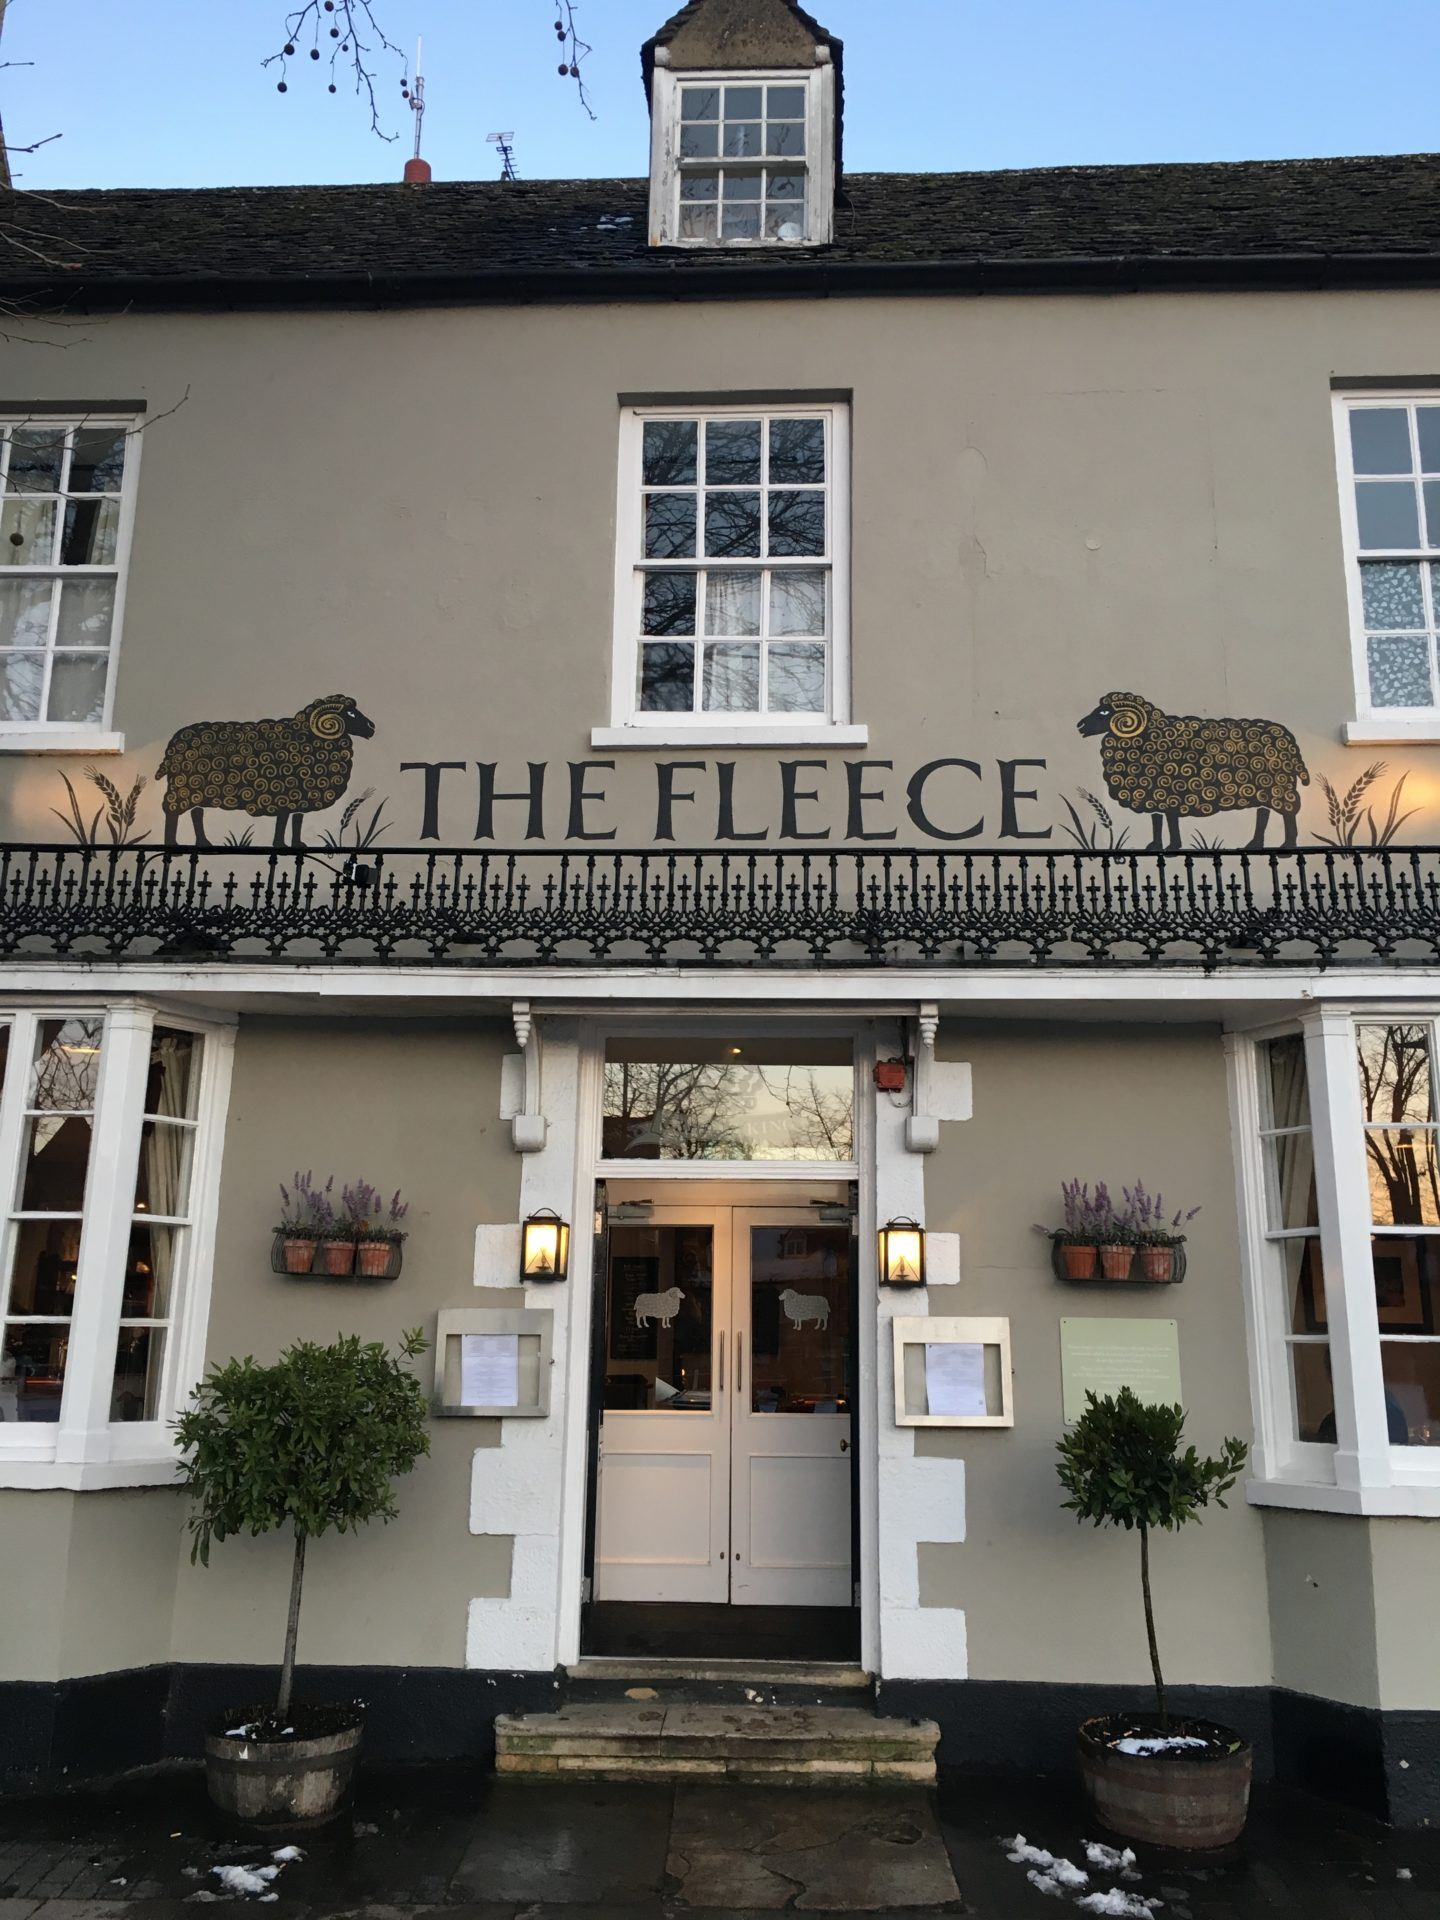 A Peachy Stay at The Fleece, Witney